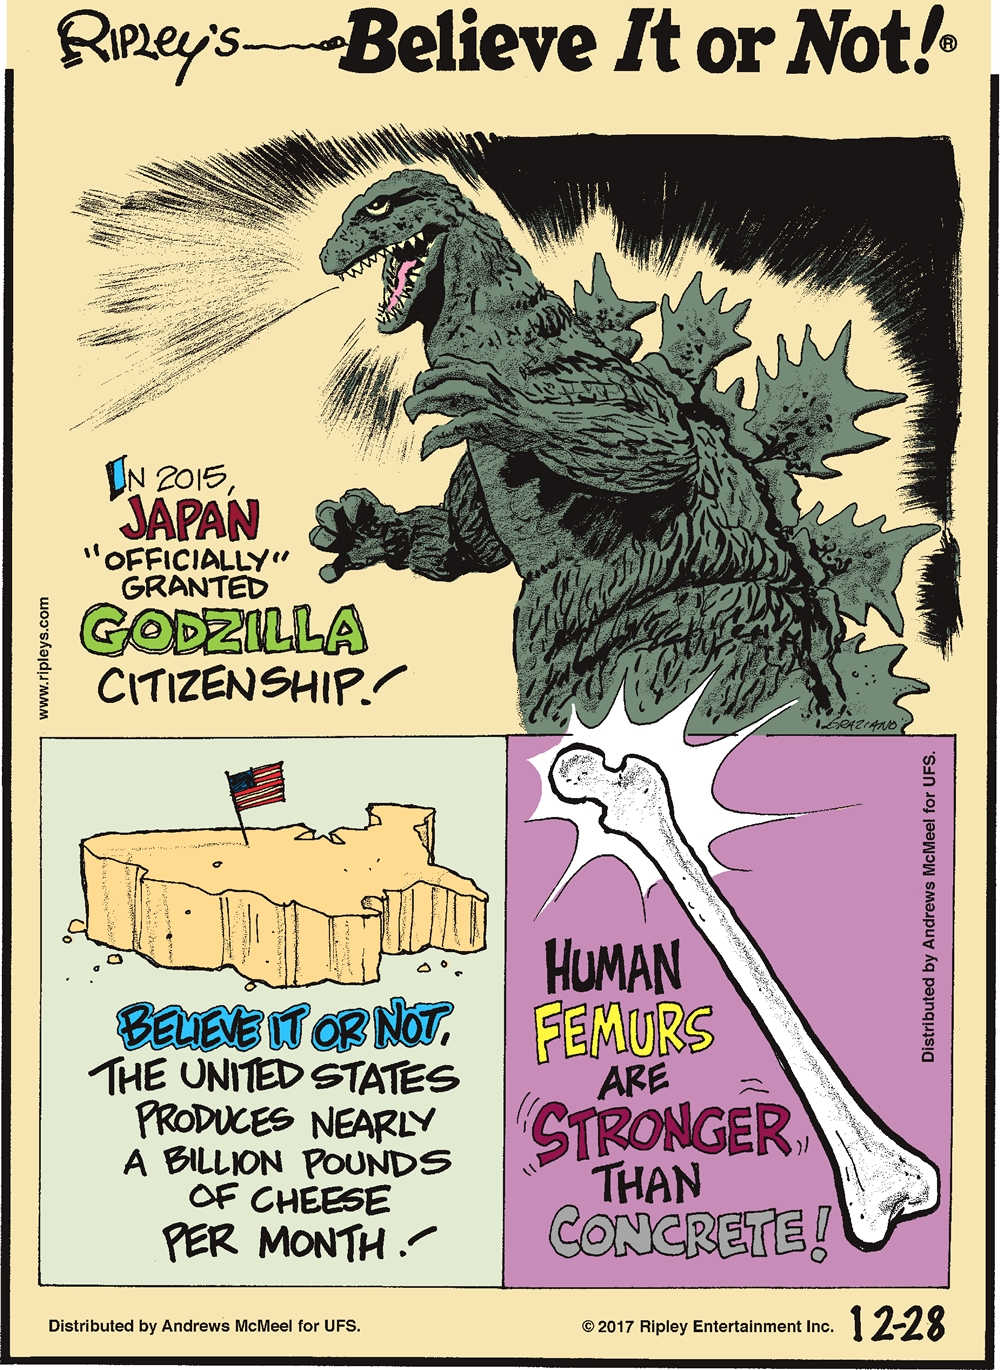 "In 2015, Japan ""officially"" granted Godzilla citizenship!-------------------- Believe it or not, the United States produces nearly a billion pounds of cheese per month!-------------------- Human femurs are stronger than concrete!"